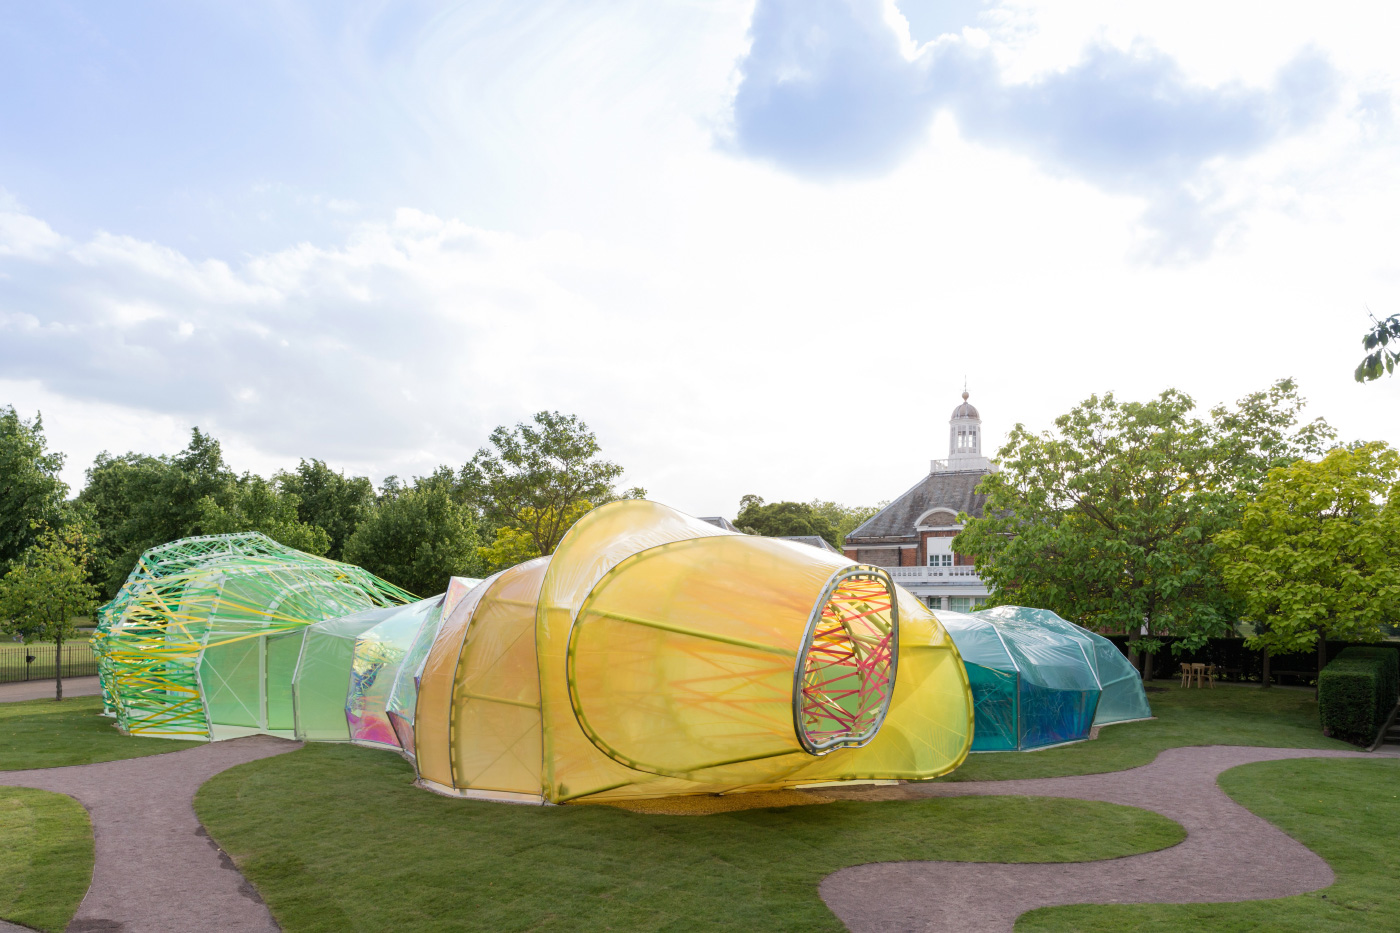 Photo of a large, multicolored fabric installation on an open lawn